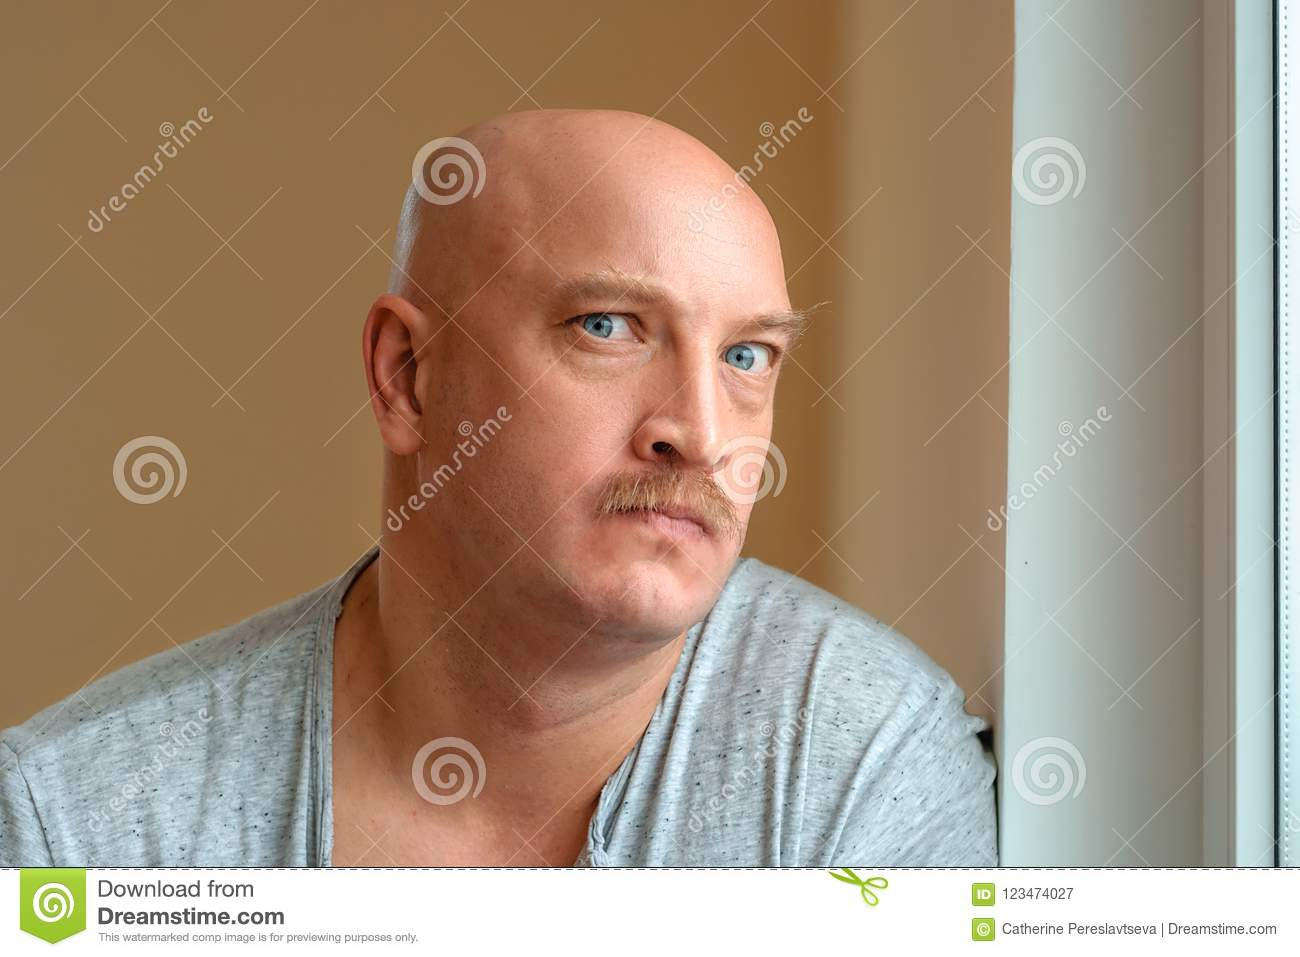 An emotional man with a mustache different facial expressions on the face